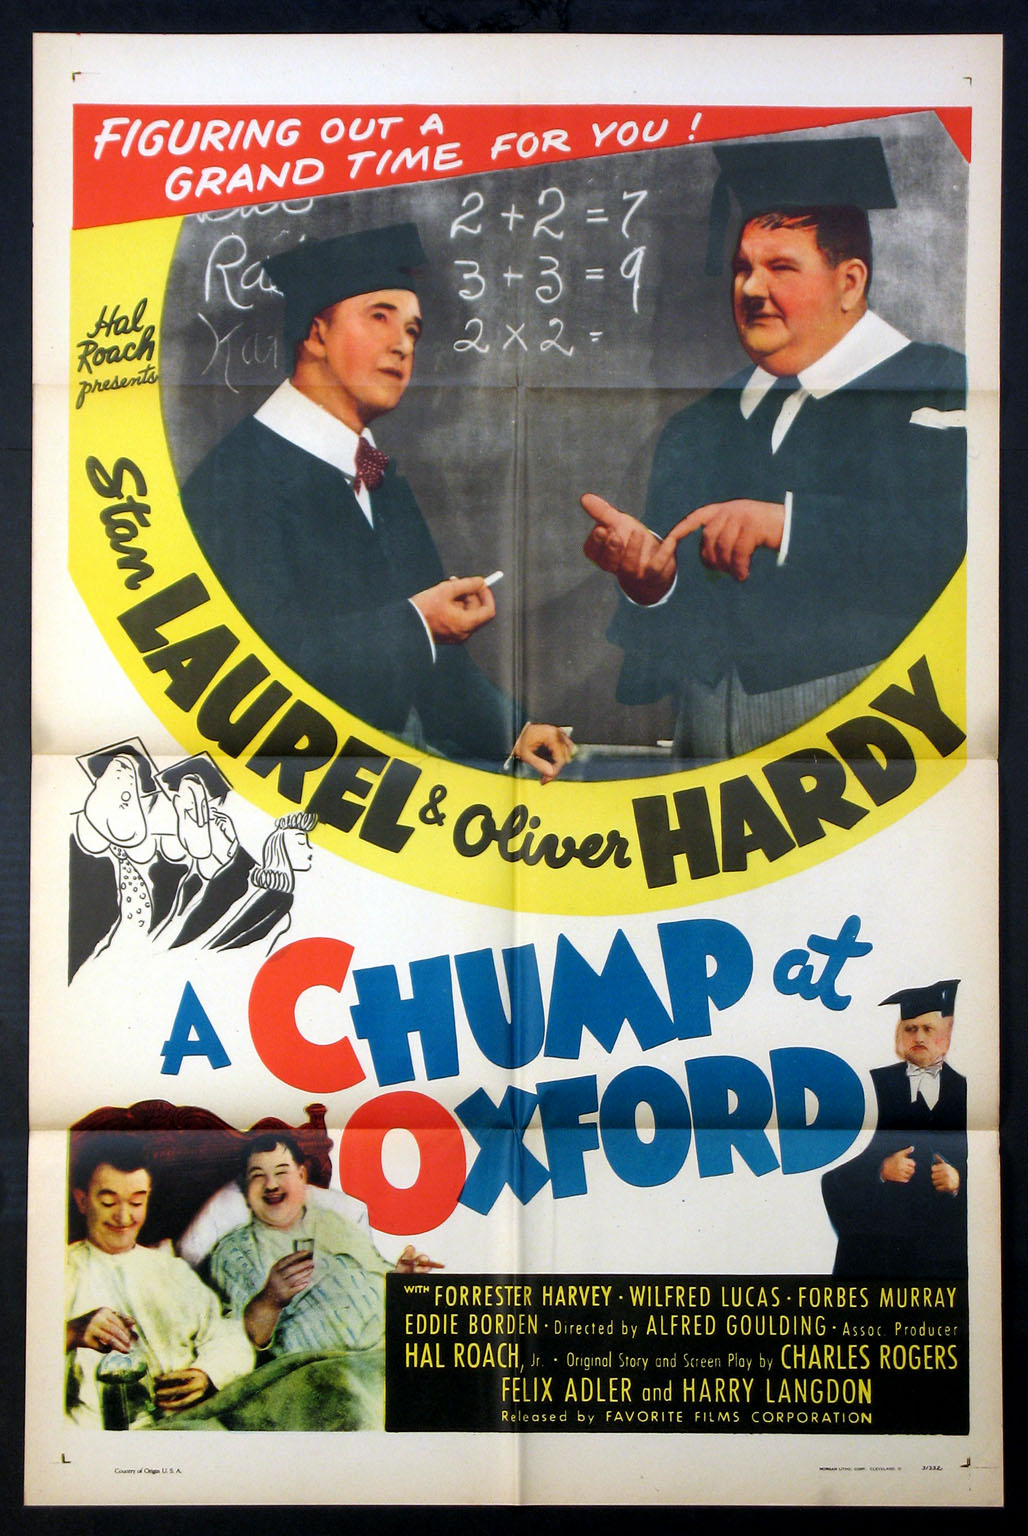 CHUMP AT OXFORD, A @ FilmPosters.com